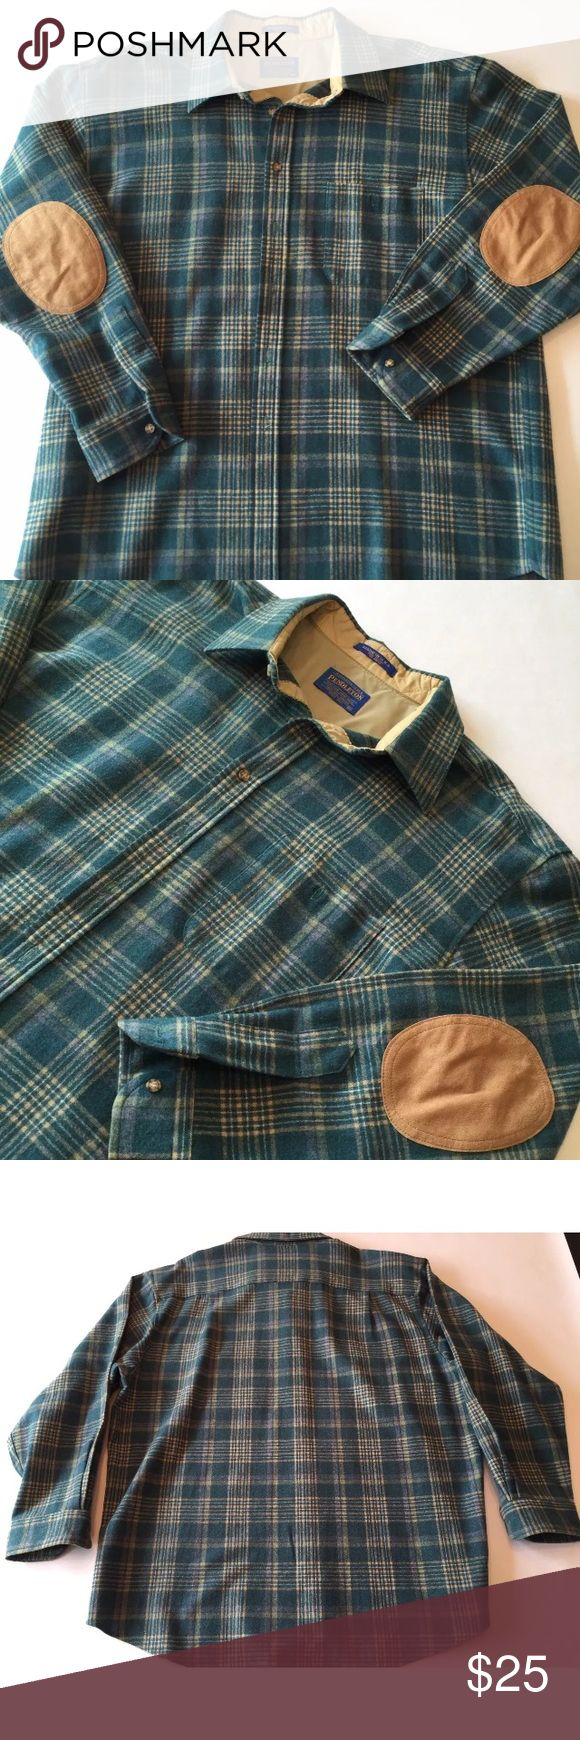 Vintage Pendleton Virgin Wool Shirt Excellent Cond Excellent condition. Men's XL. Made in USA. Shipping same day or next! Pendleton Shirts Casual Button Down Shirts